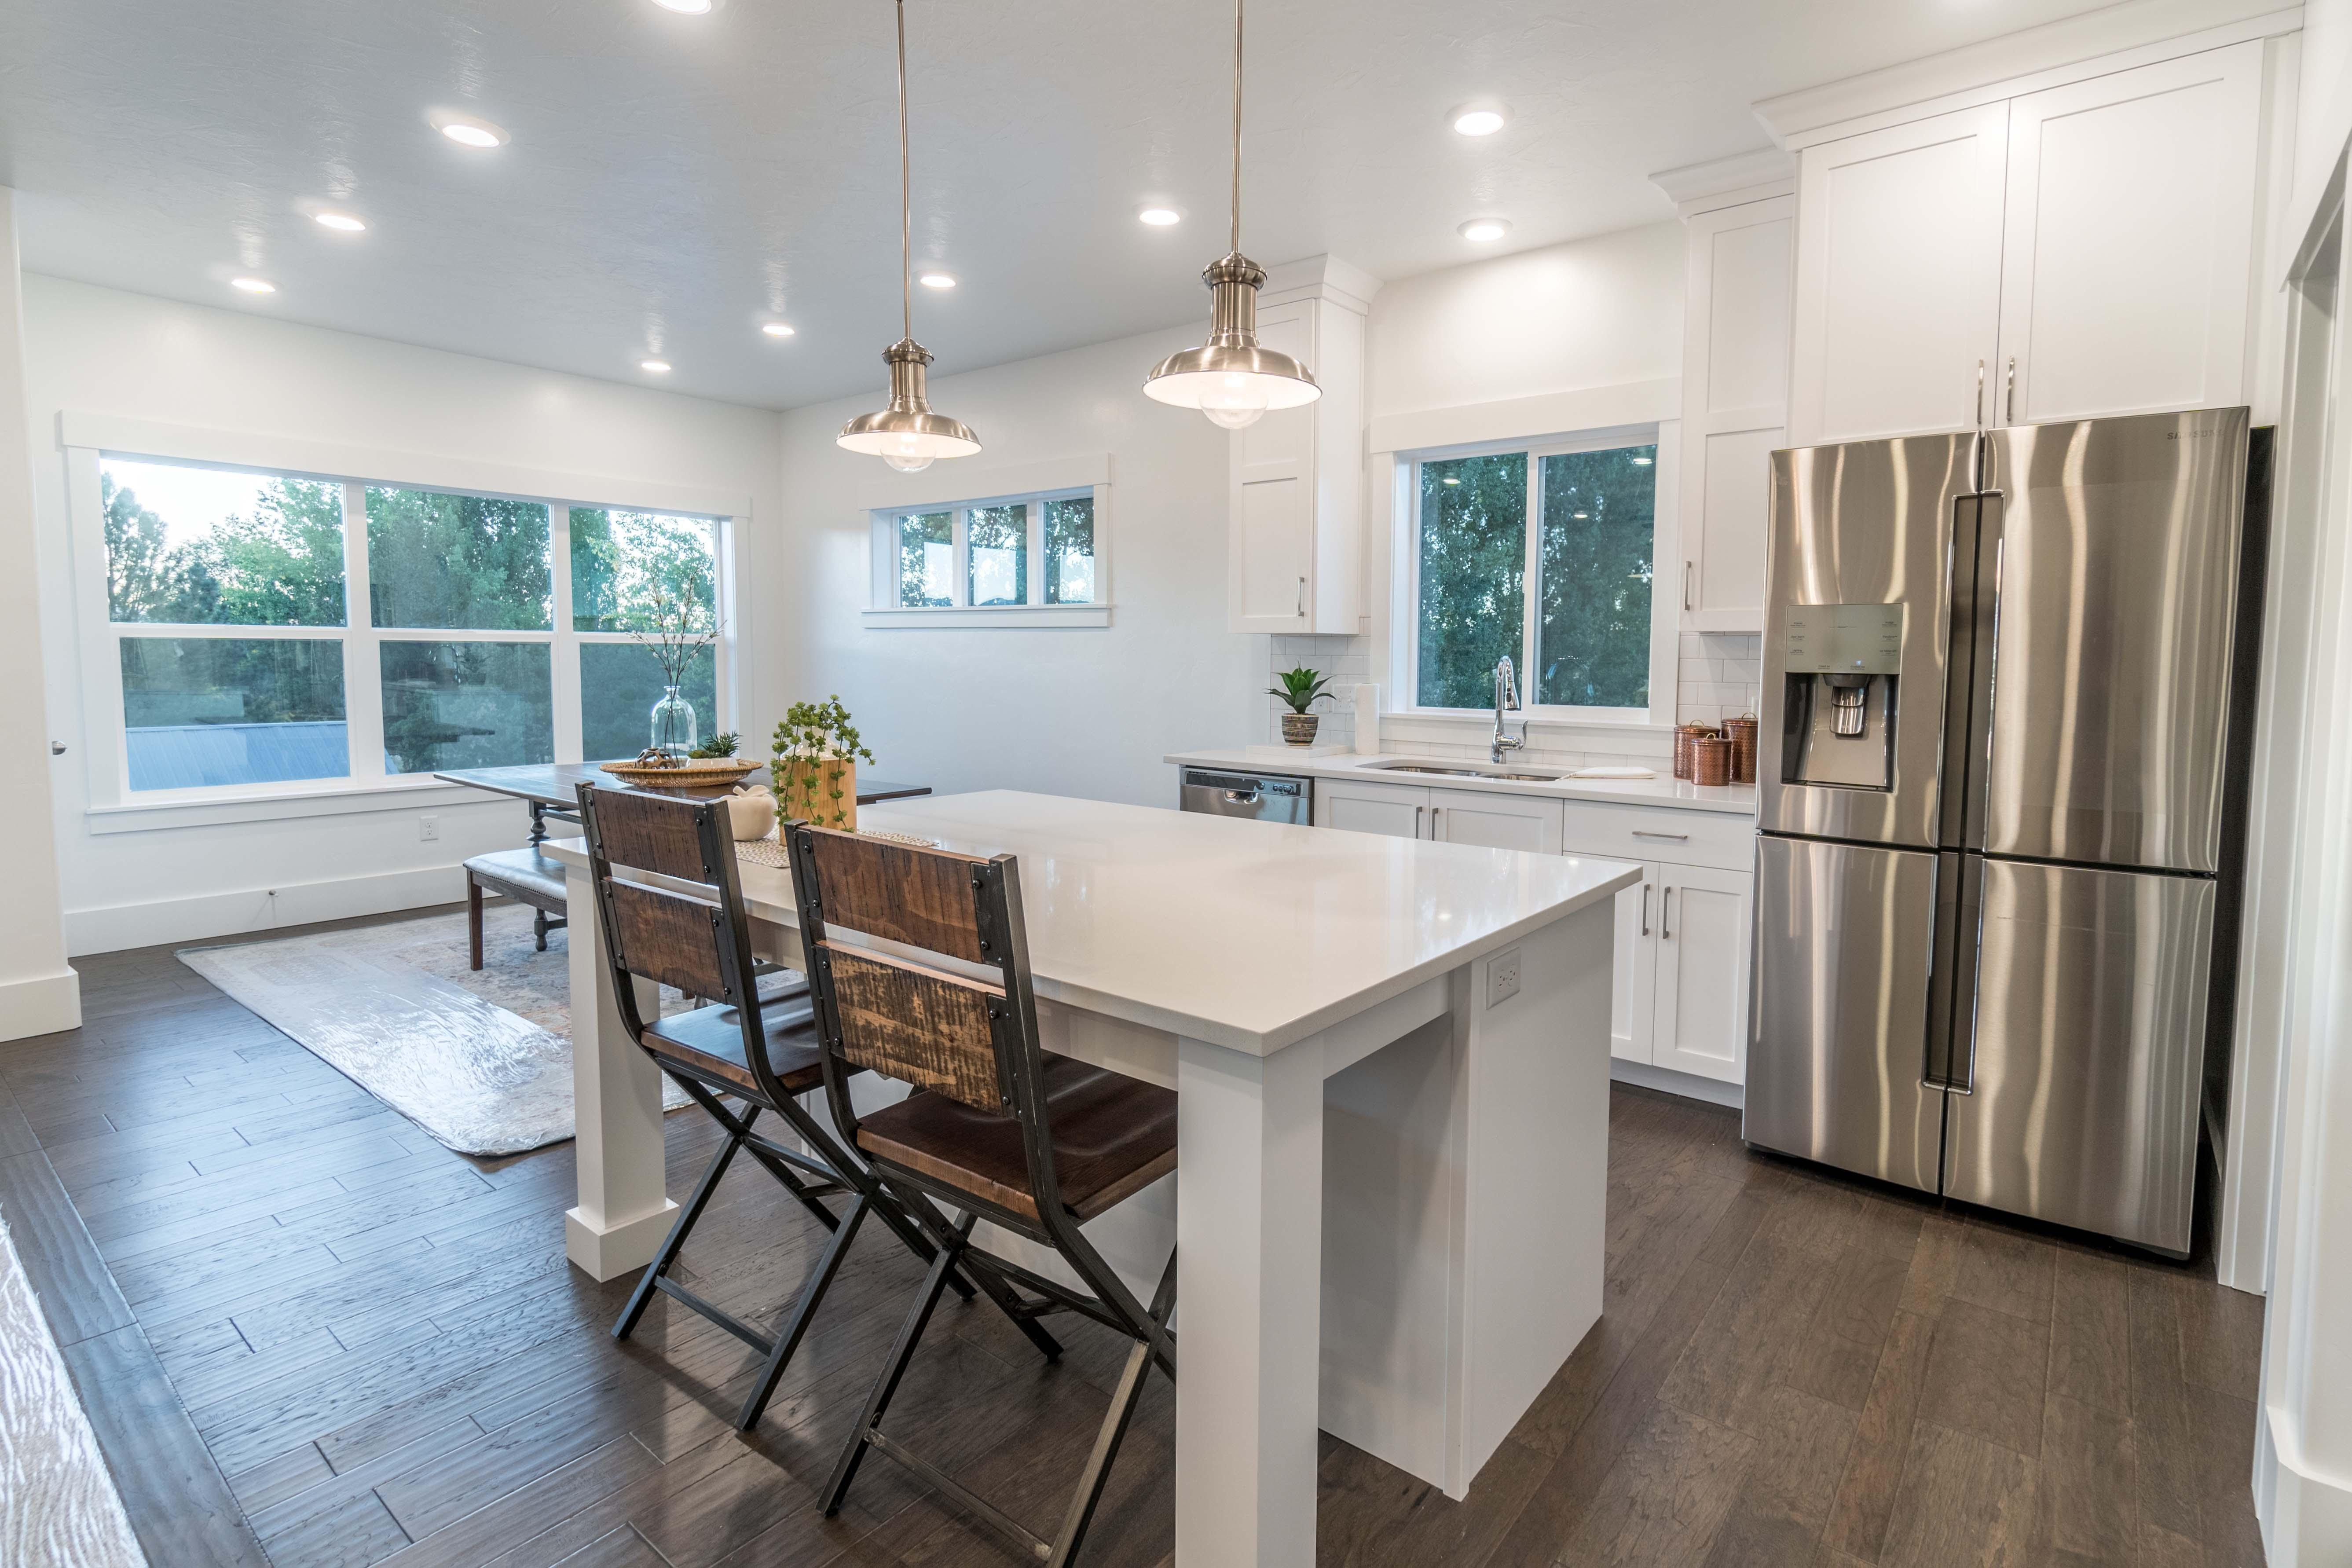 Kitchen featured in the Summerlyn (SOG)  By Visionary Homes in Logan, UT